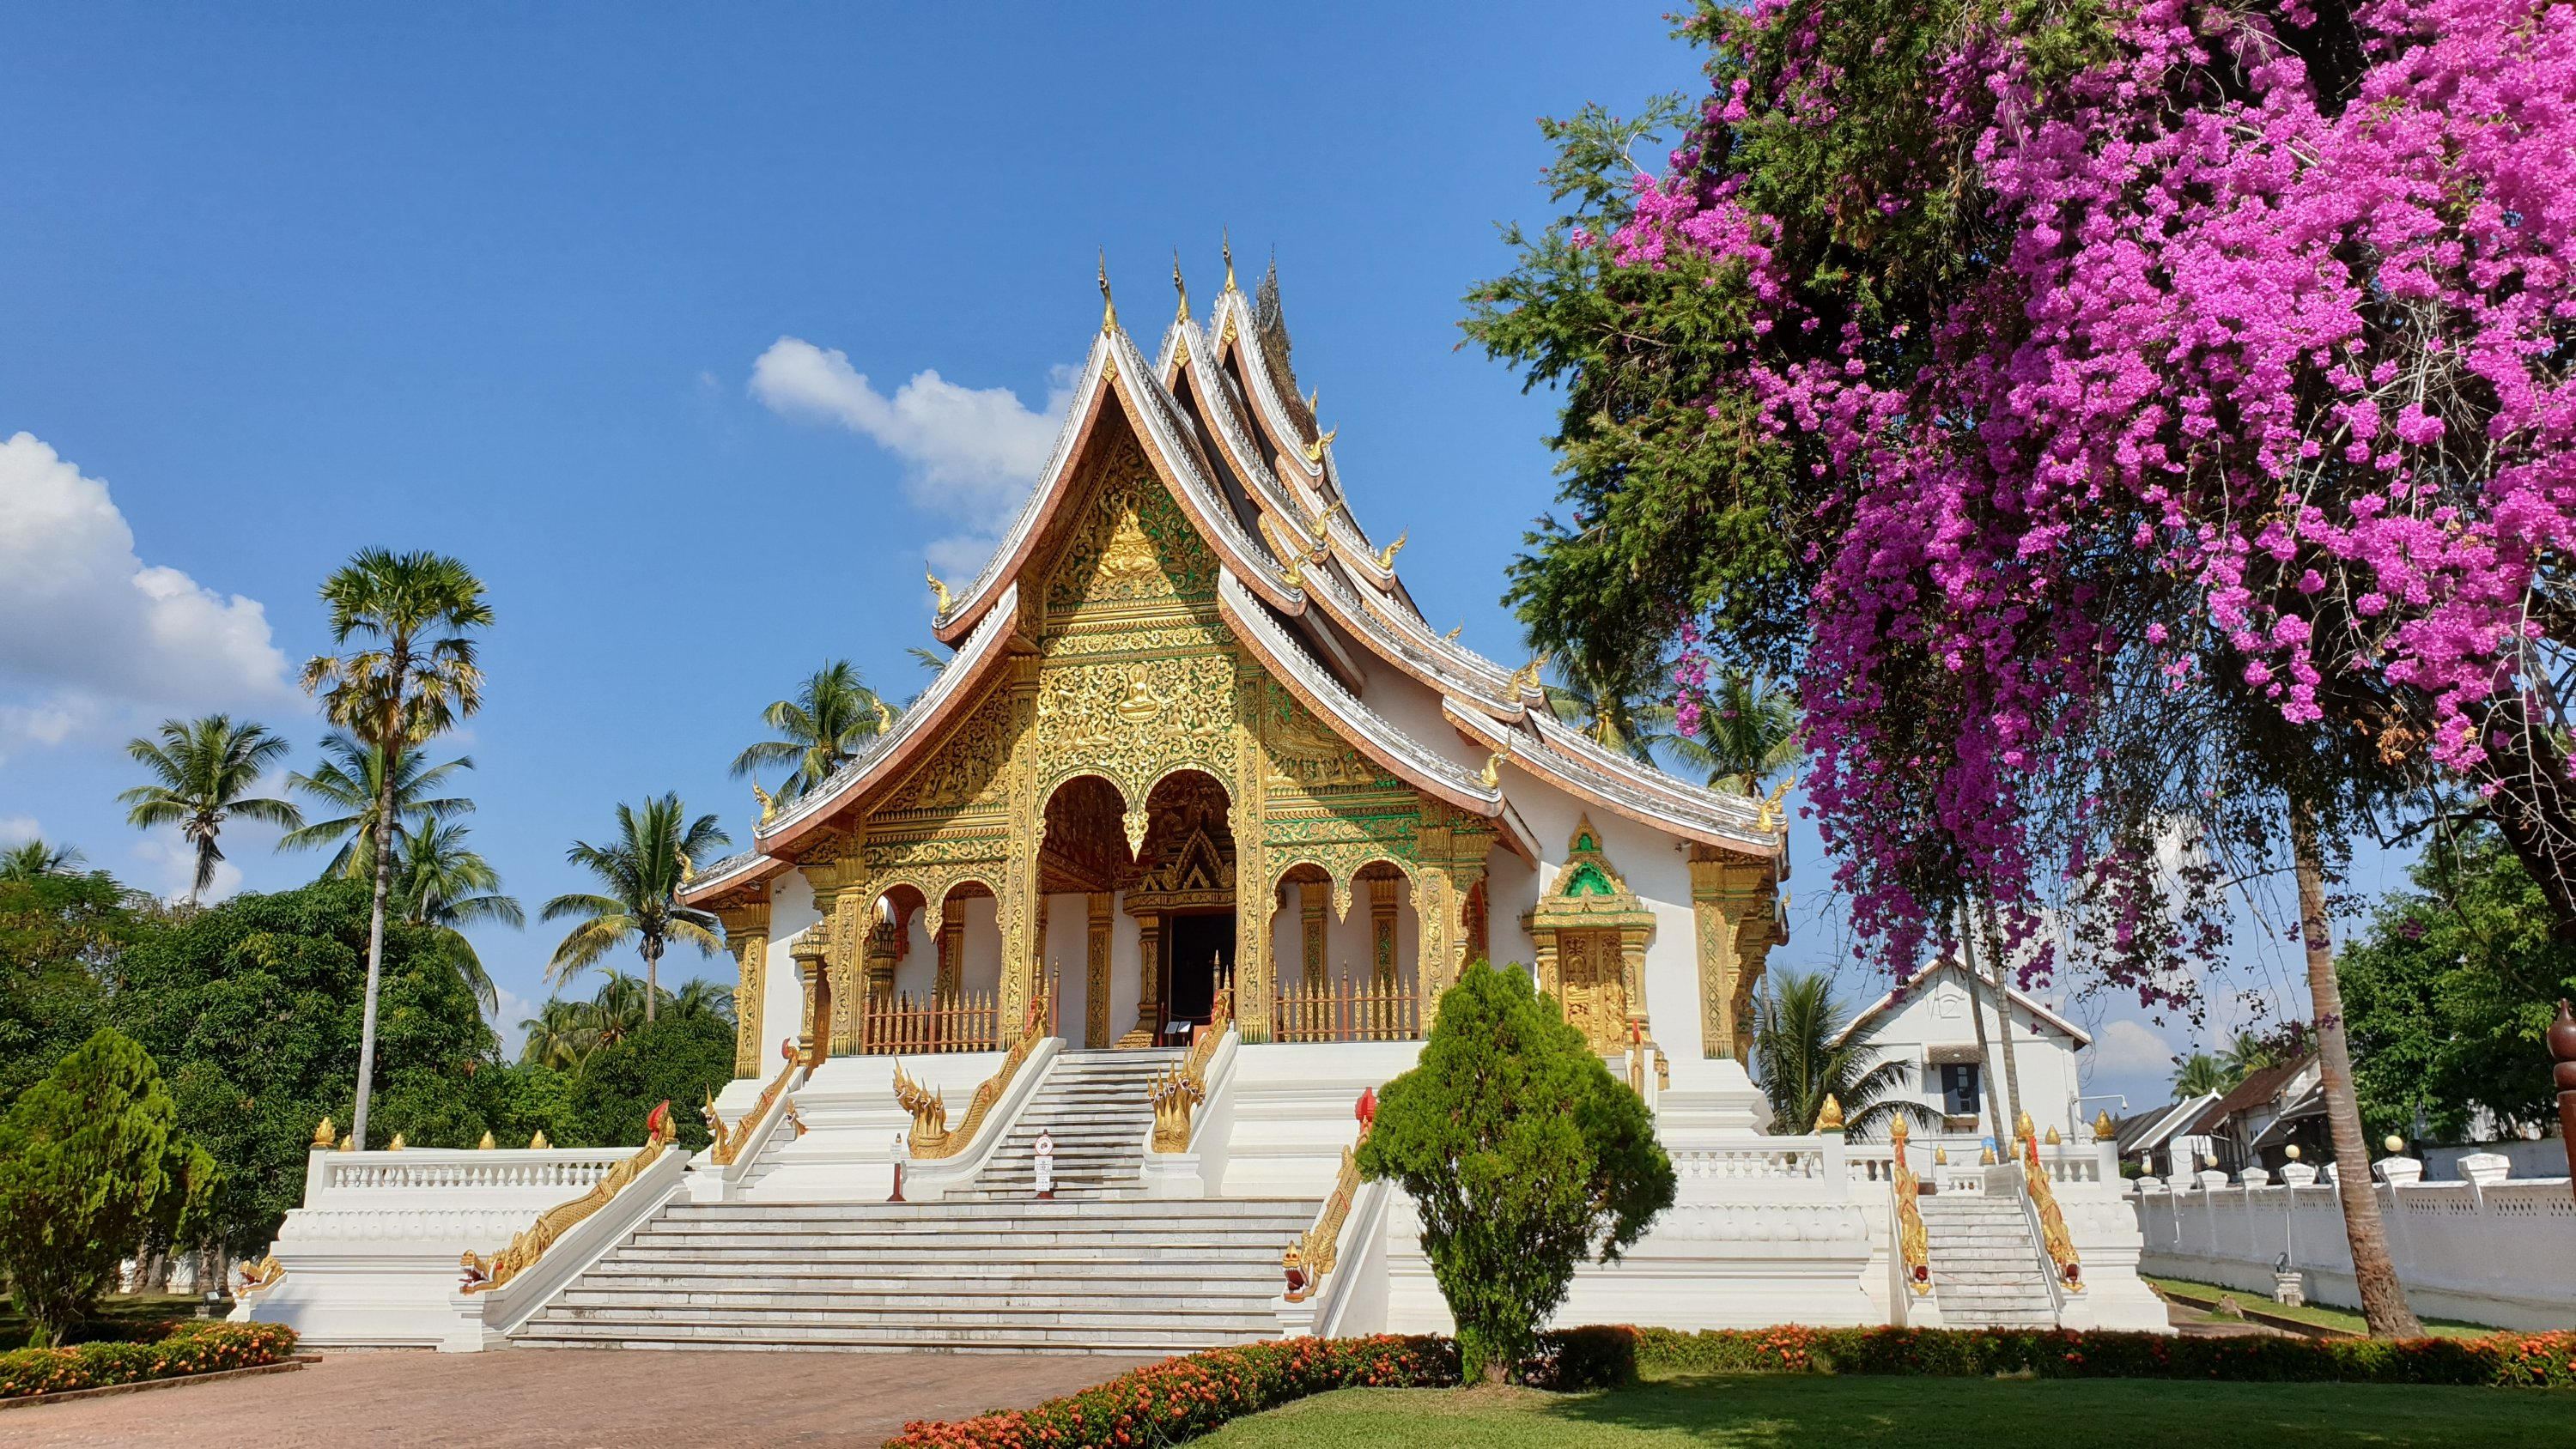 Temple at the Royal Palace, Luang Prabang, Laos